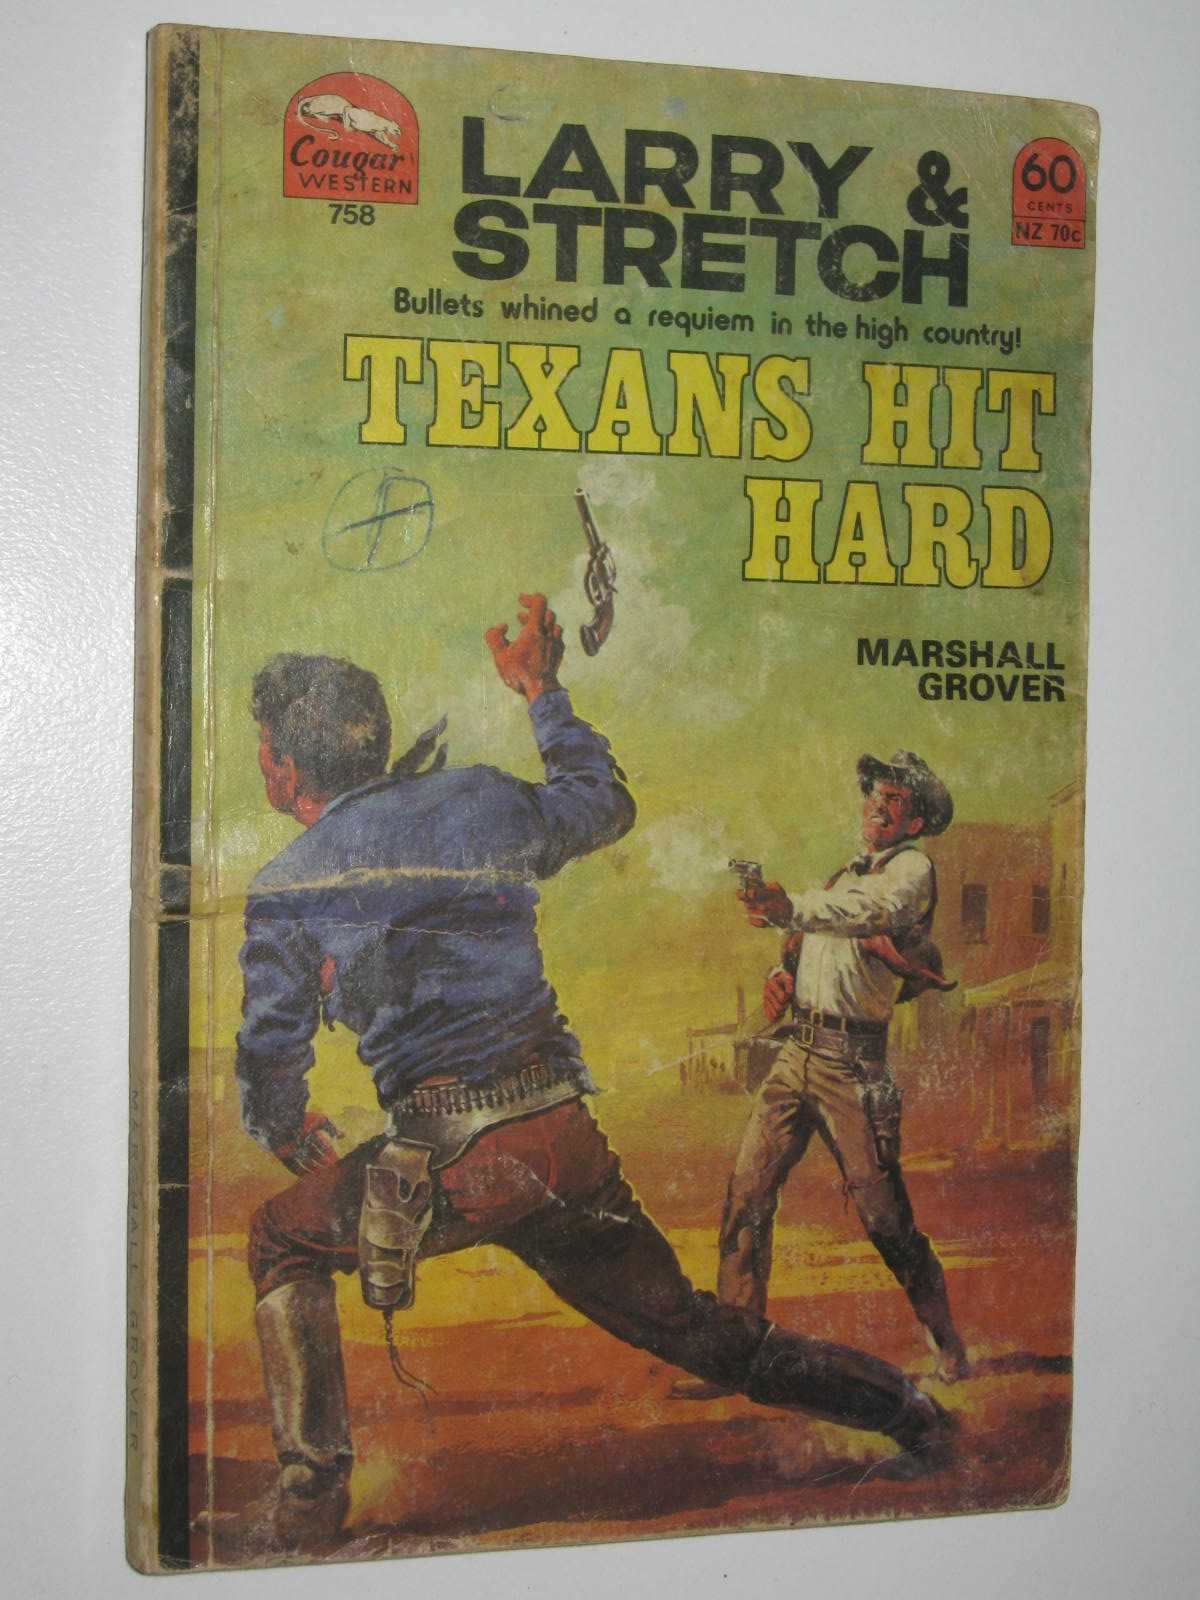 Image for Texans Hit Hard - Larry and Stretch [Cougar Western] Series #758